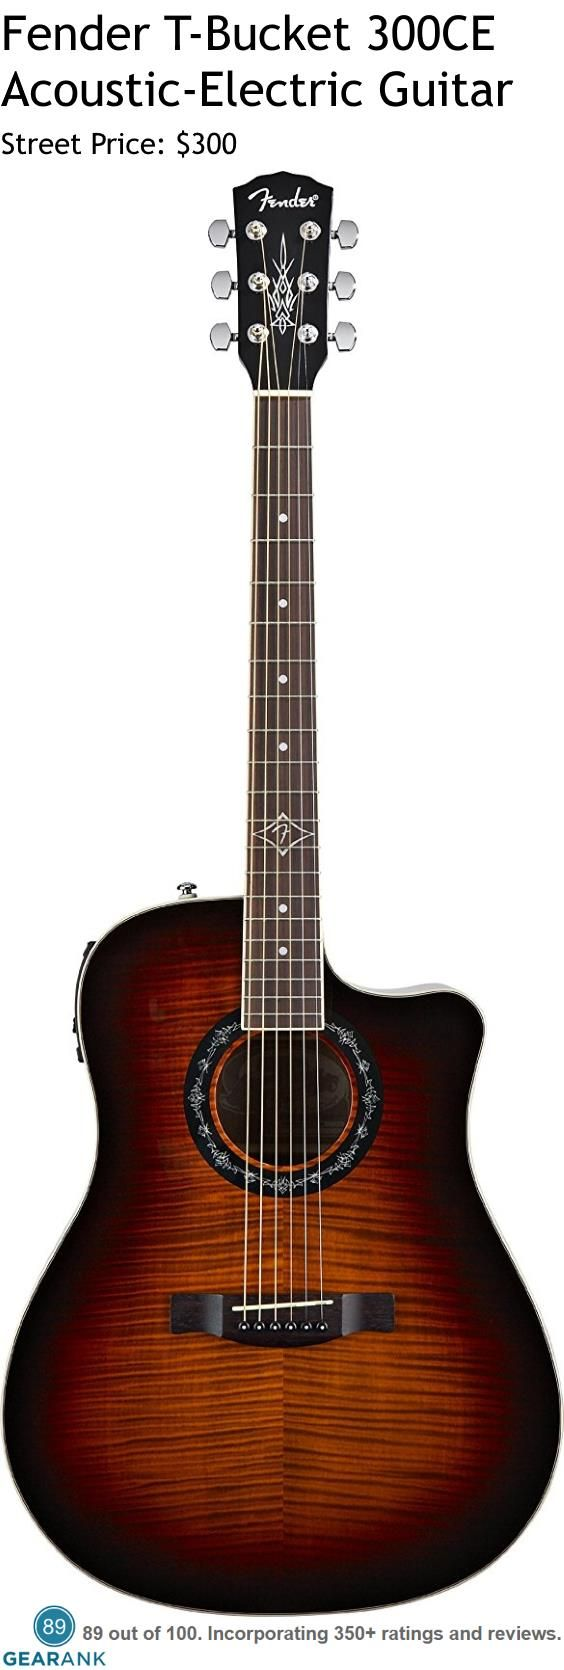 Fender T-Bucket 300CE Acoustic-Electric Guitar. It has a maple top with mahogany back and sides, rosewood fingerboard and bridge and mahogany neck.  The electronics are Fishman Isys III pickup/active preamp system with a built-in chromatic tuner, on/off switch, three-band EQ and volume control. For a Detailed Guide to Acoustic Guitars see https://www.gearank.com/guides/acoustic-guitars